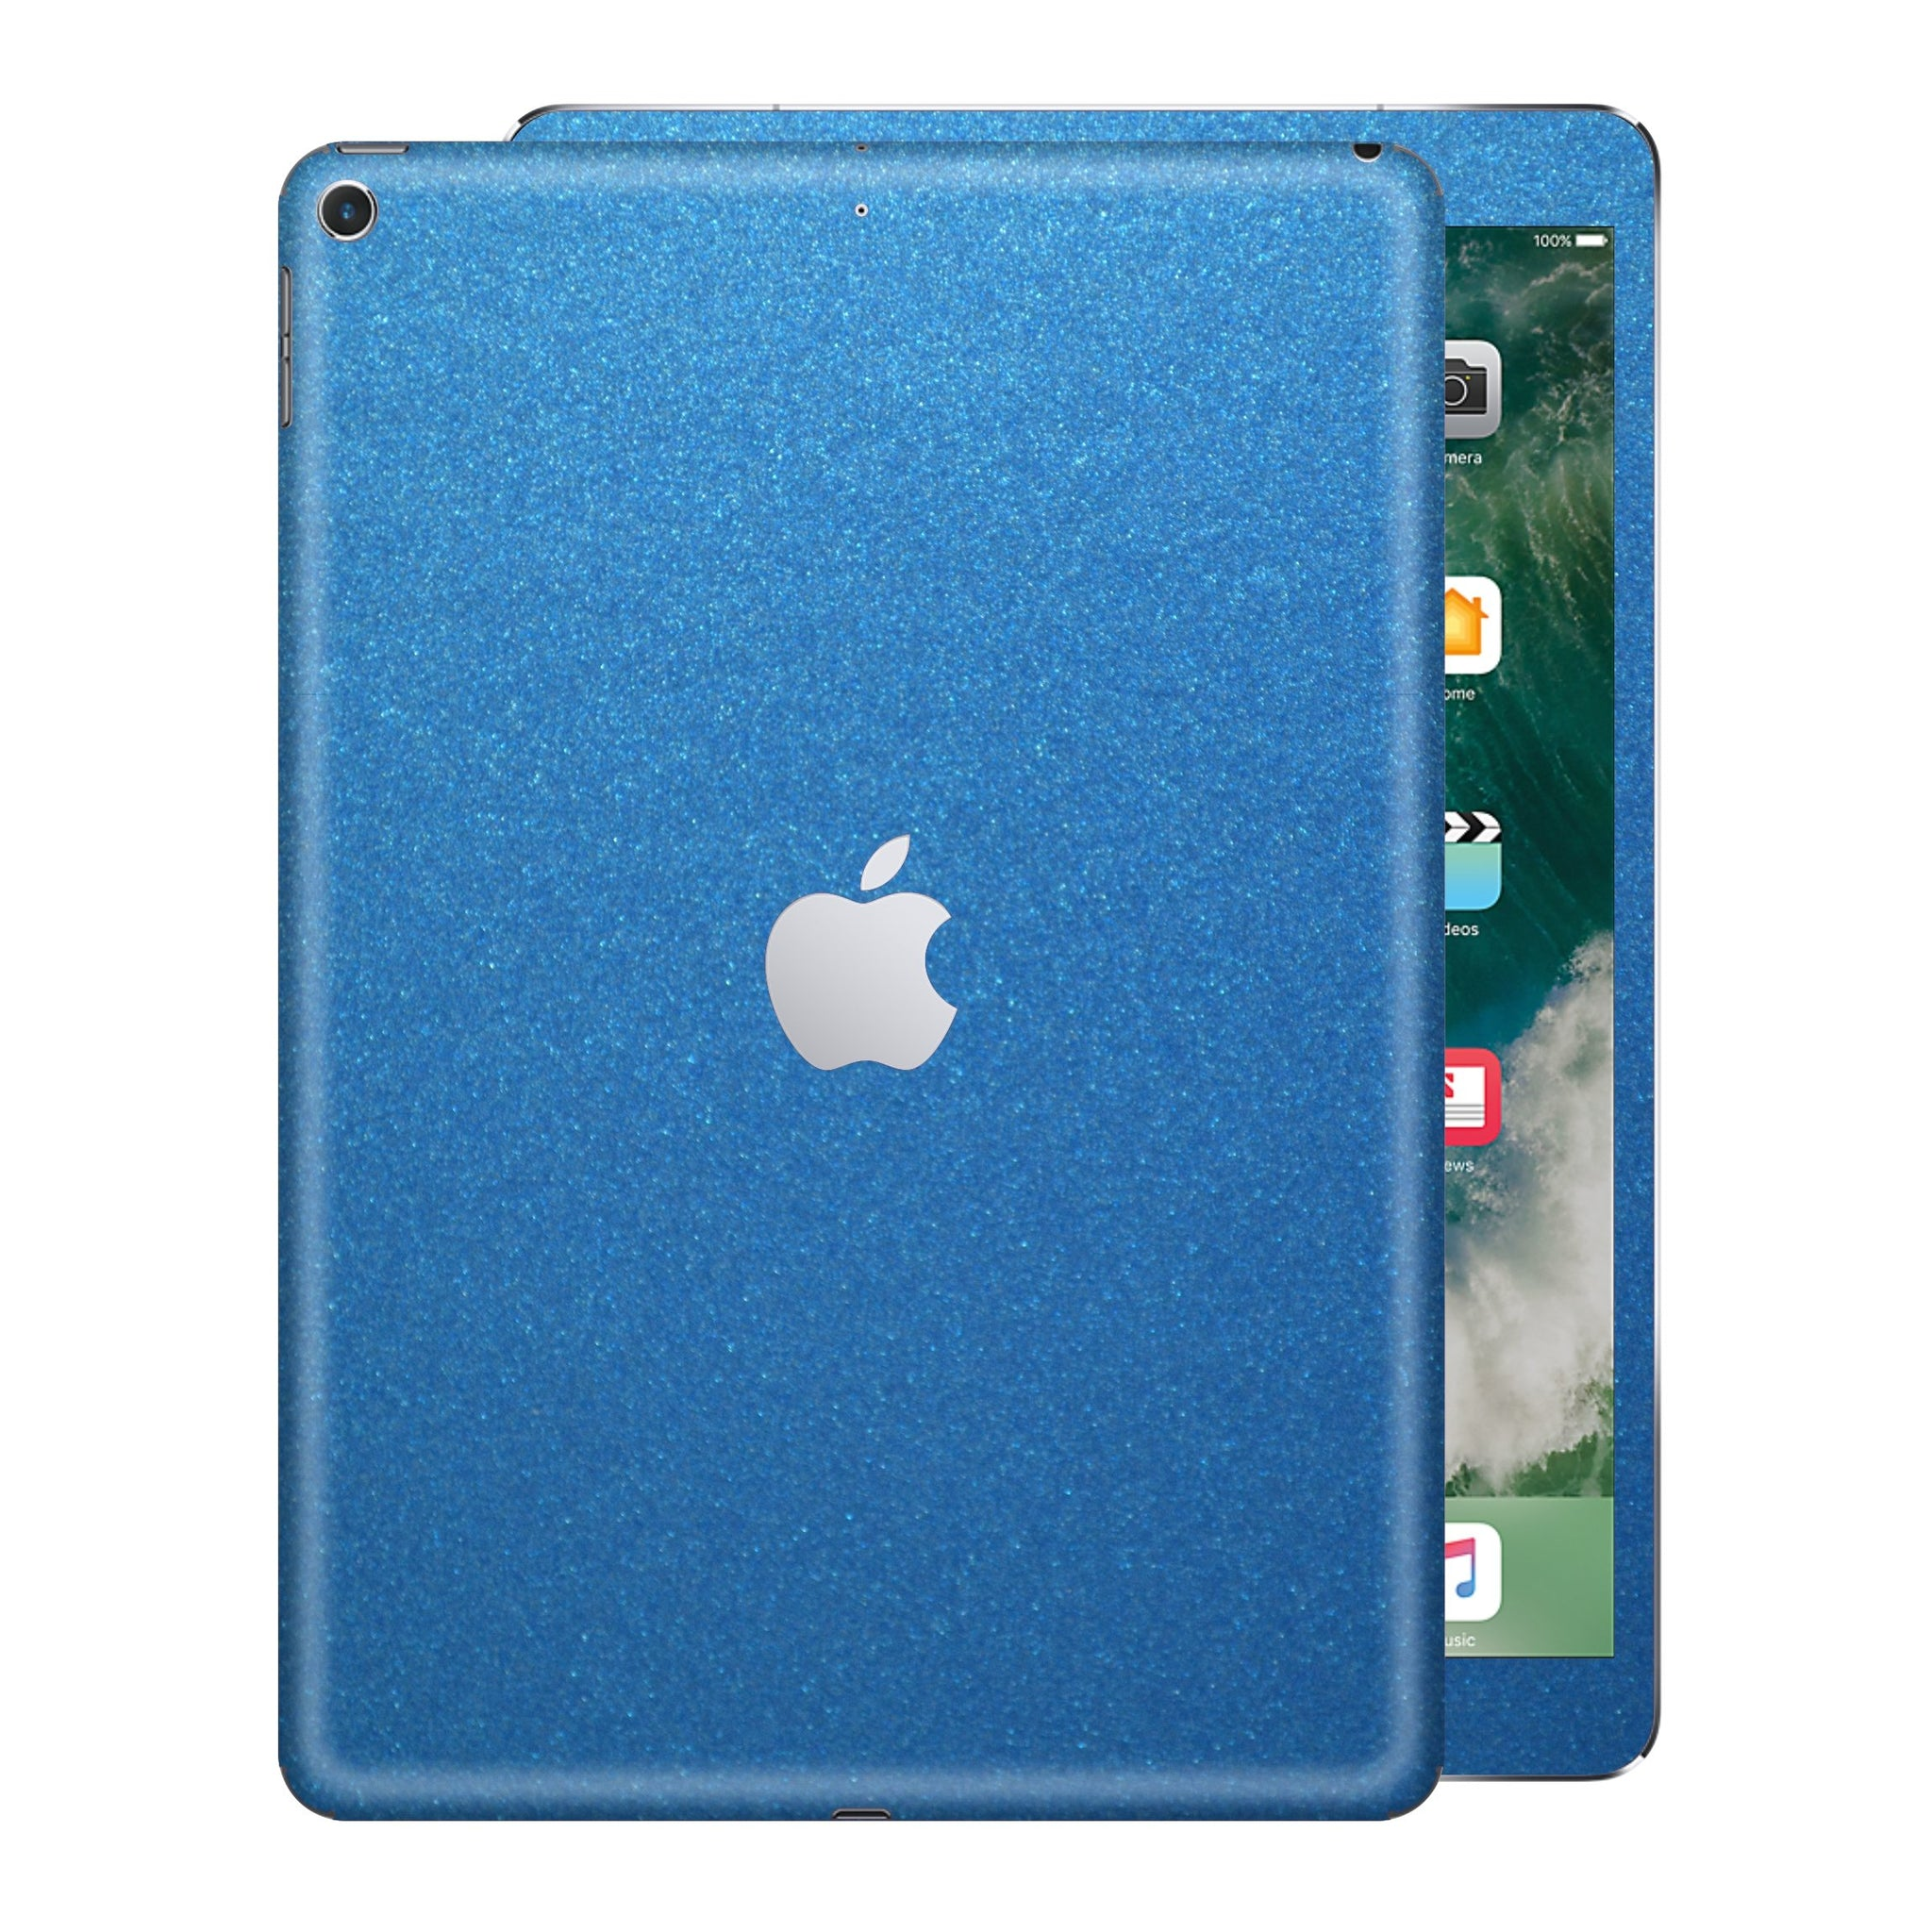 iPad 9.7 inch 2017 Glossy Azure Blue Metallic Skin Wrap Sticker Decal Cover Protector by EasySkinz